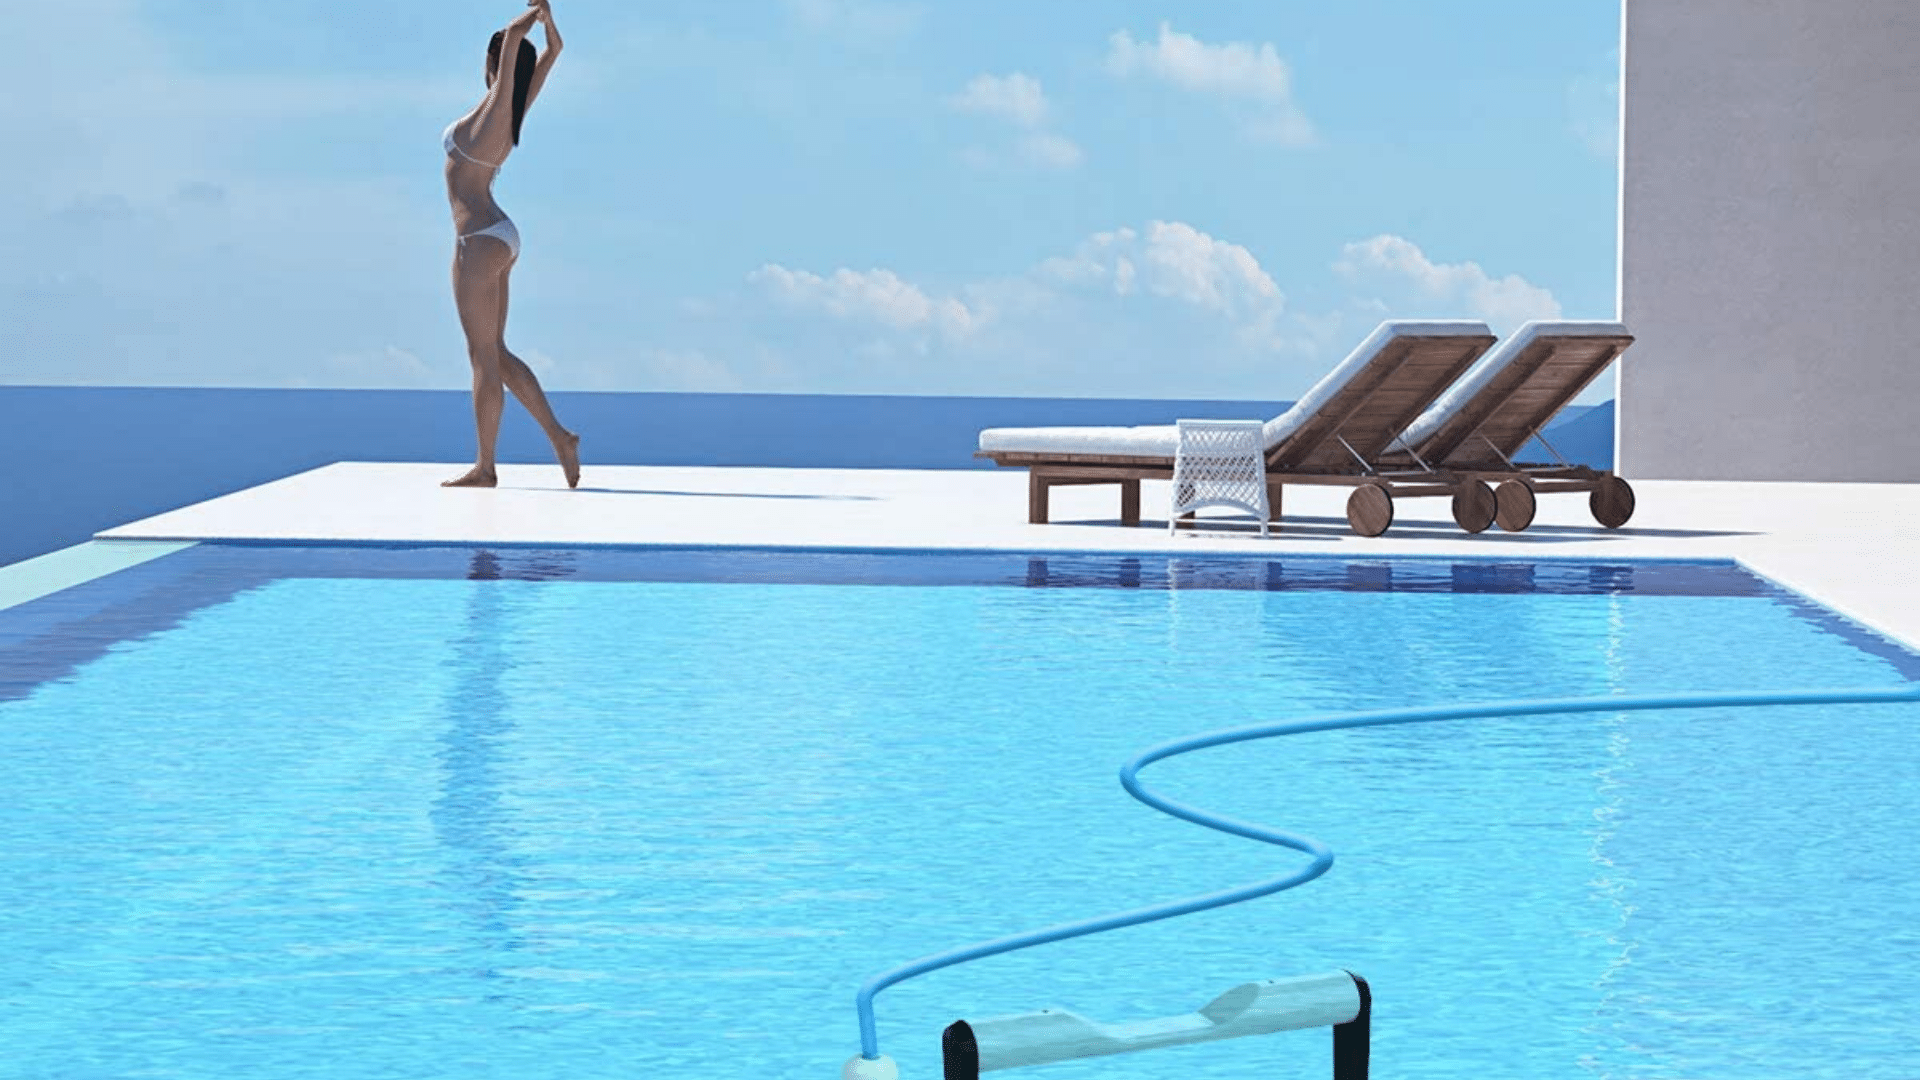 image of woman stretching beside pool cleaner